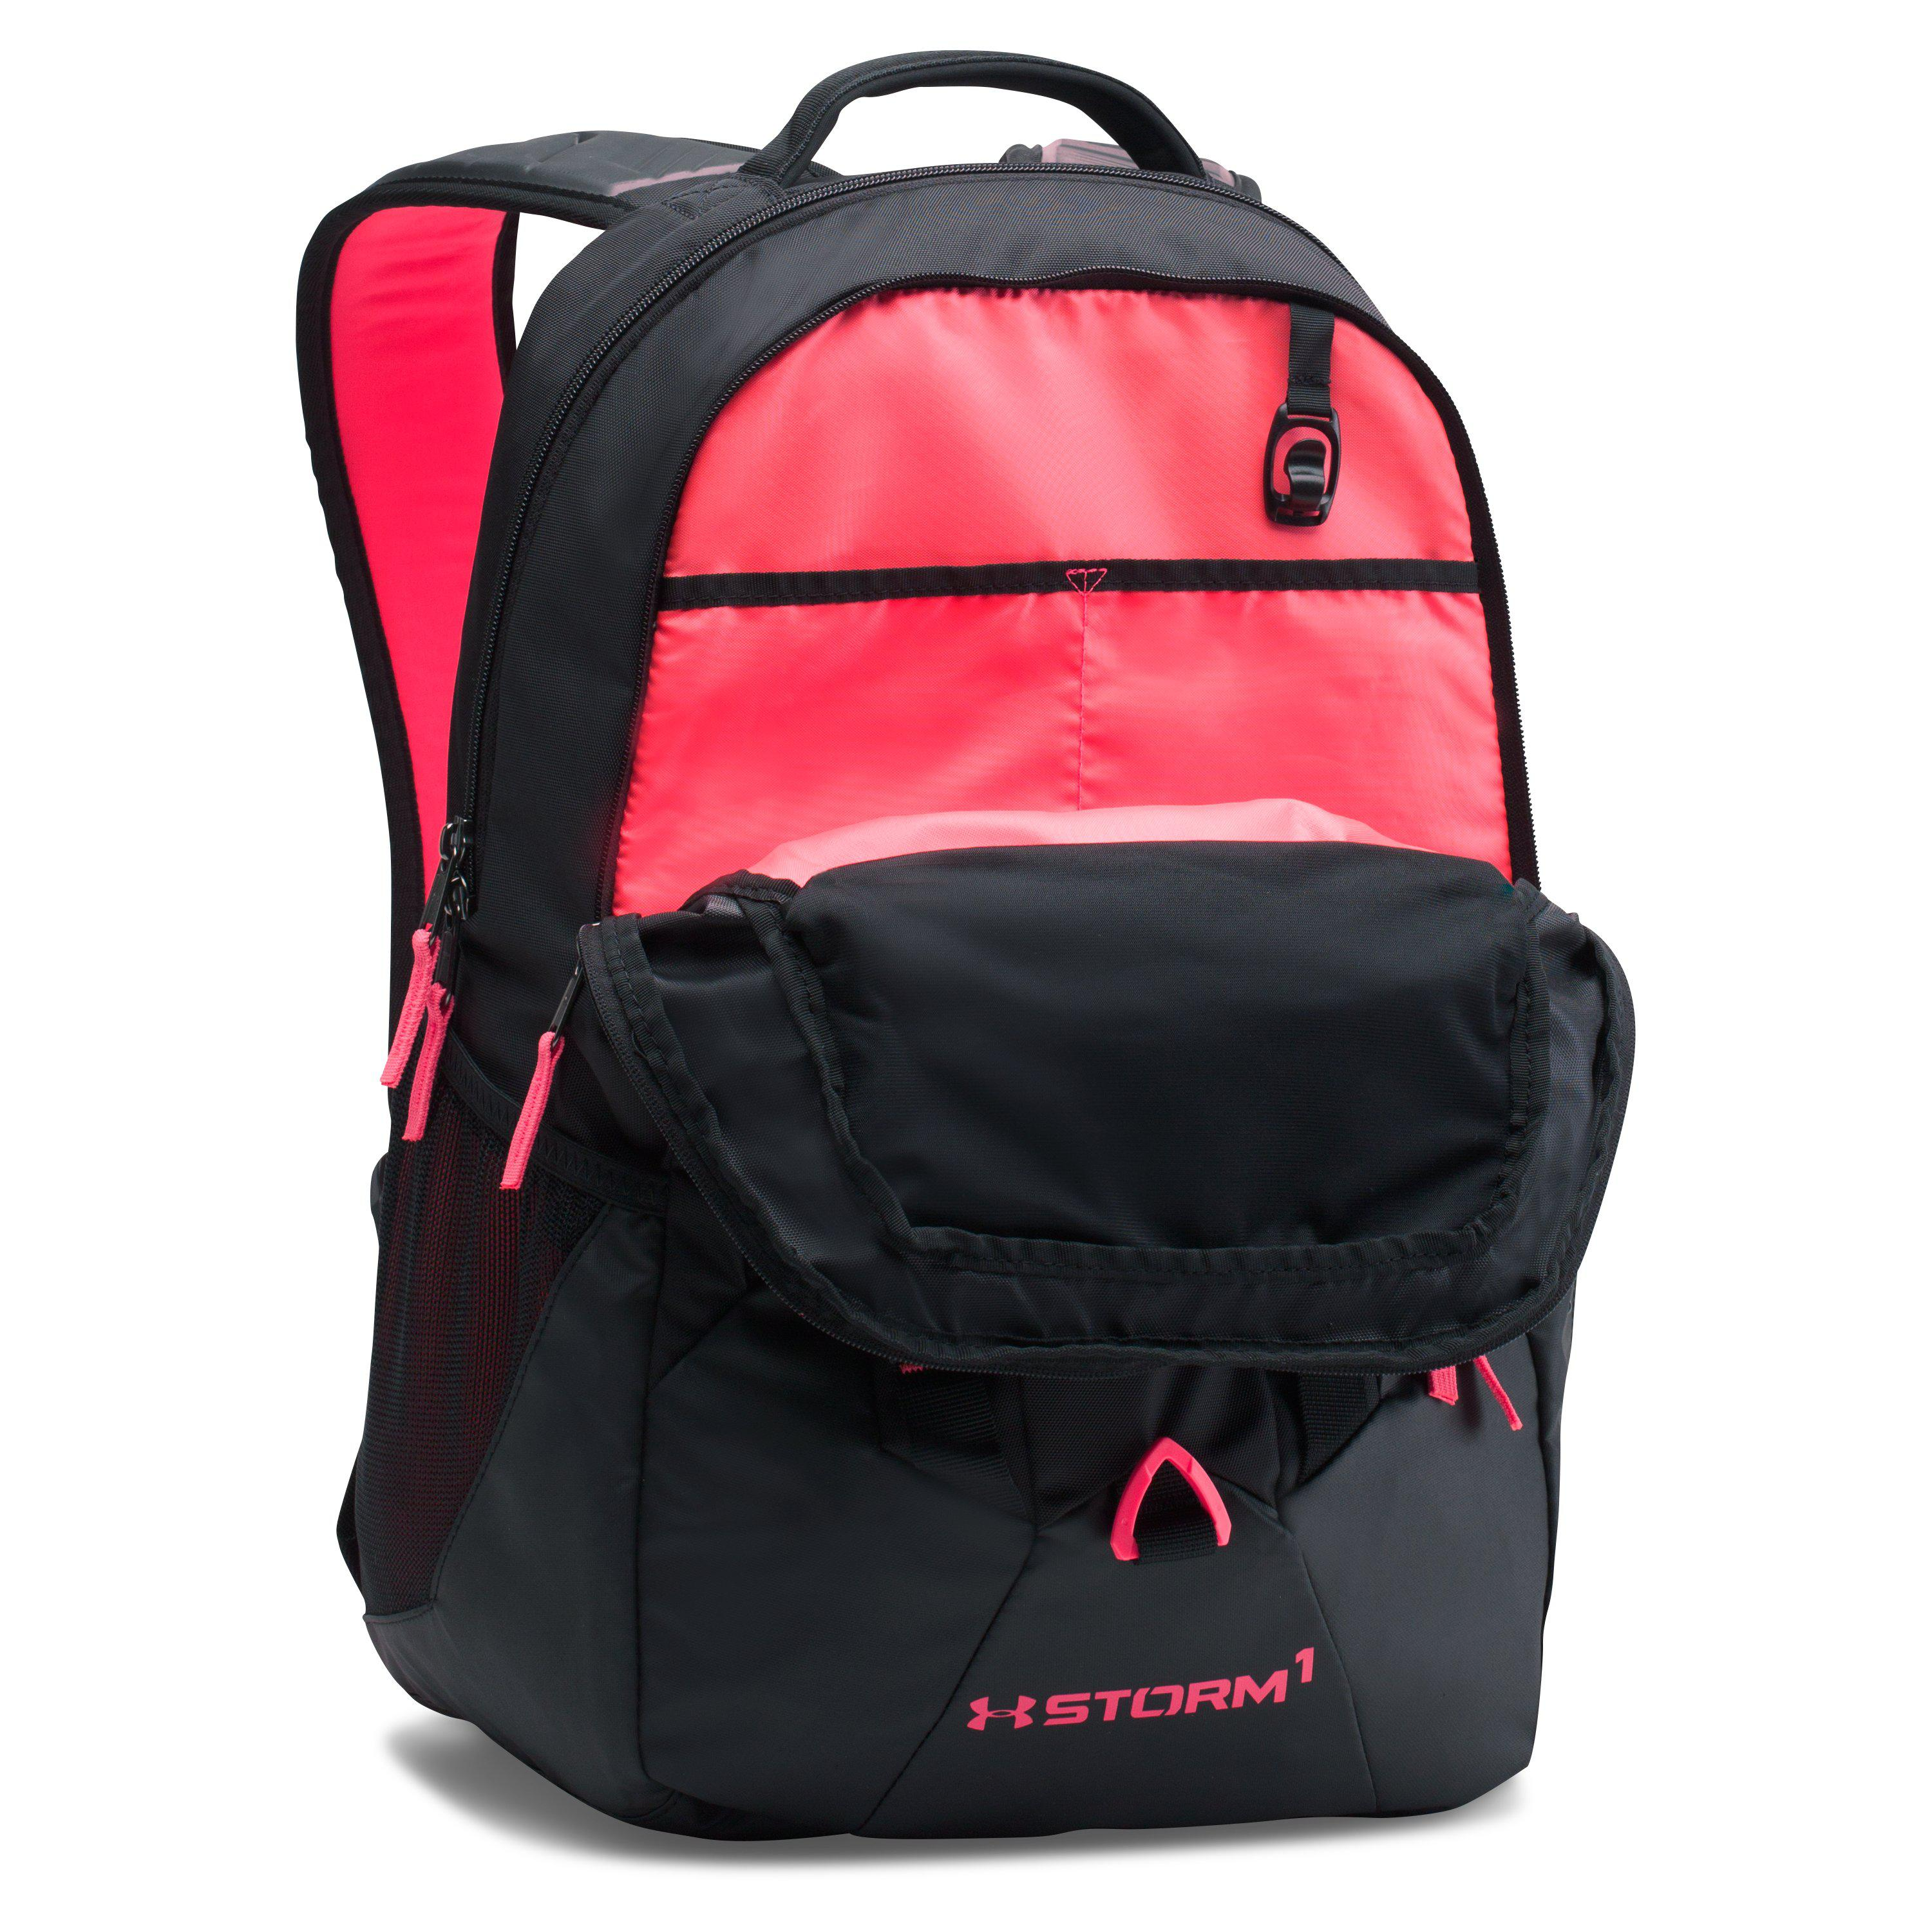 e60a03fbcef2 Lyst - Under Armour Ua Storm Recruit Backpack in Black